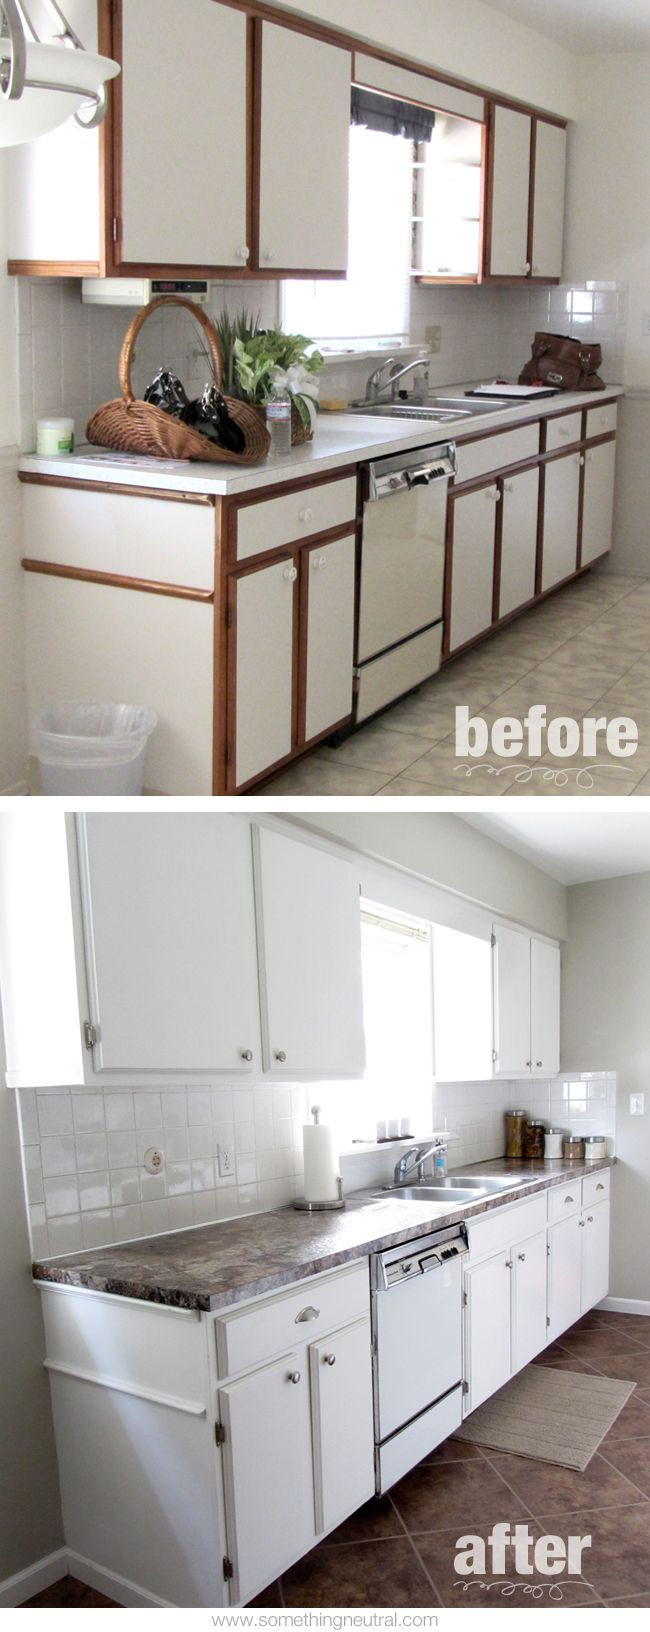 how to paint laminate kitchen cabinets best 25 laminate cabinet makeover ideas on 17213